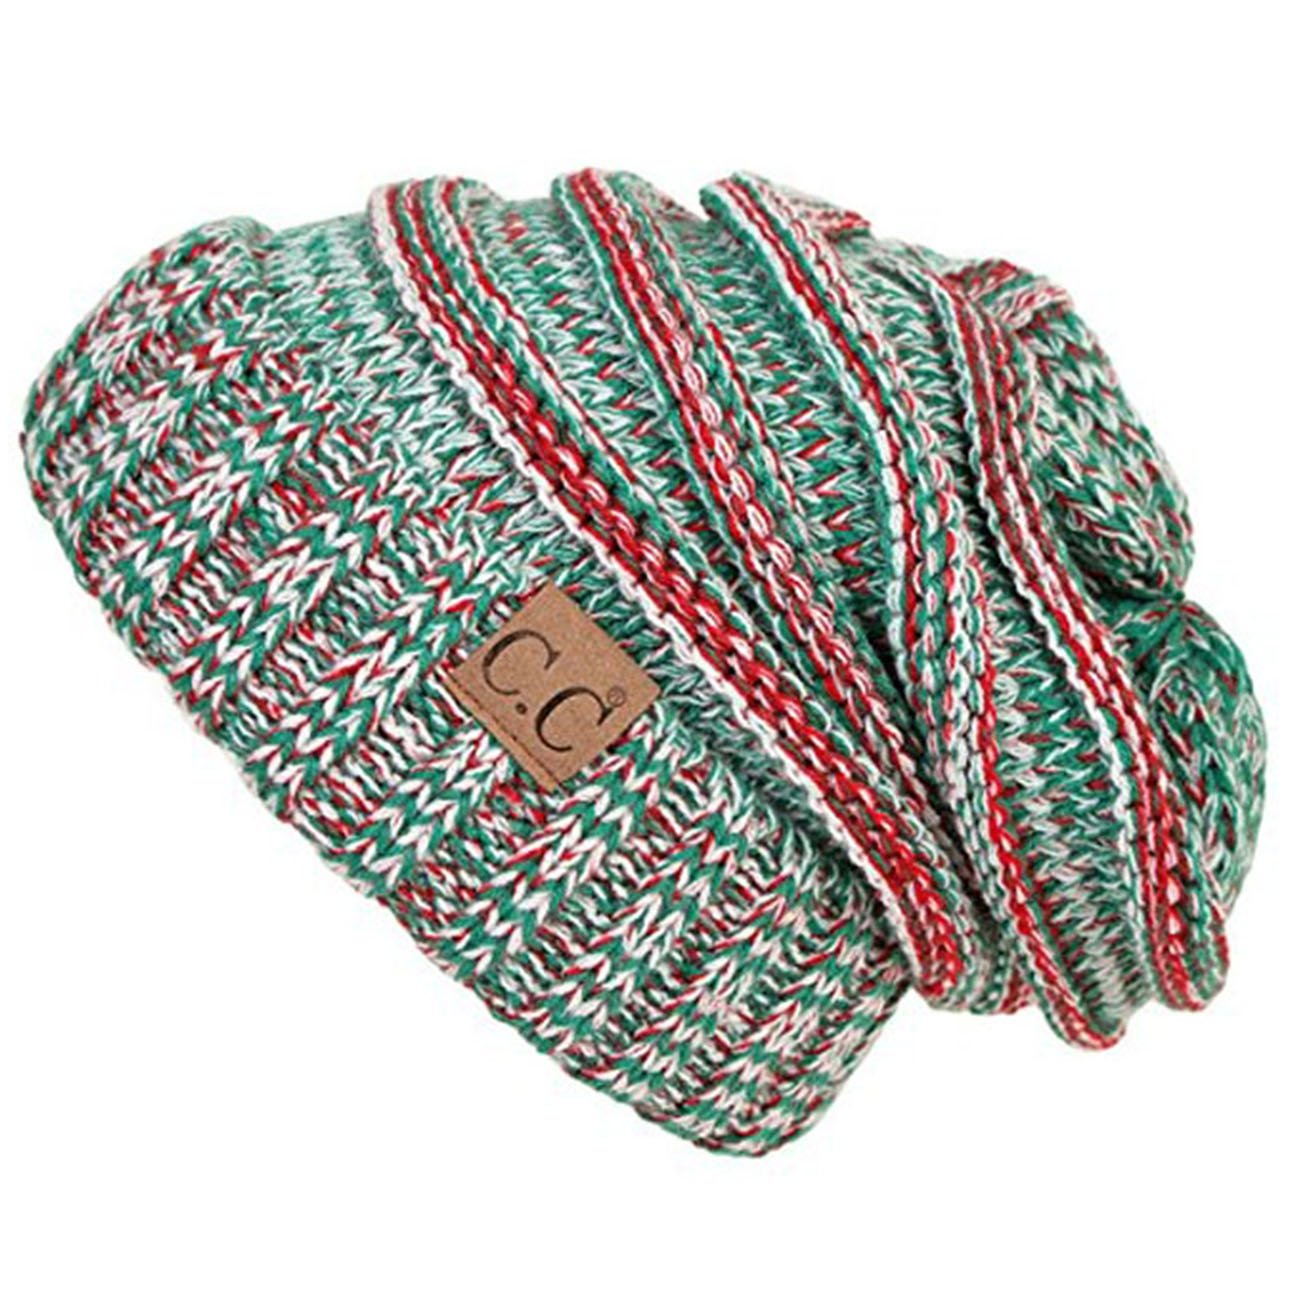 ScarvesMe C.C. Trendy Warm Oversized Chunky Soft Oversized Cable Knit Slouchy Beanie (Christmas)